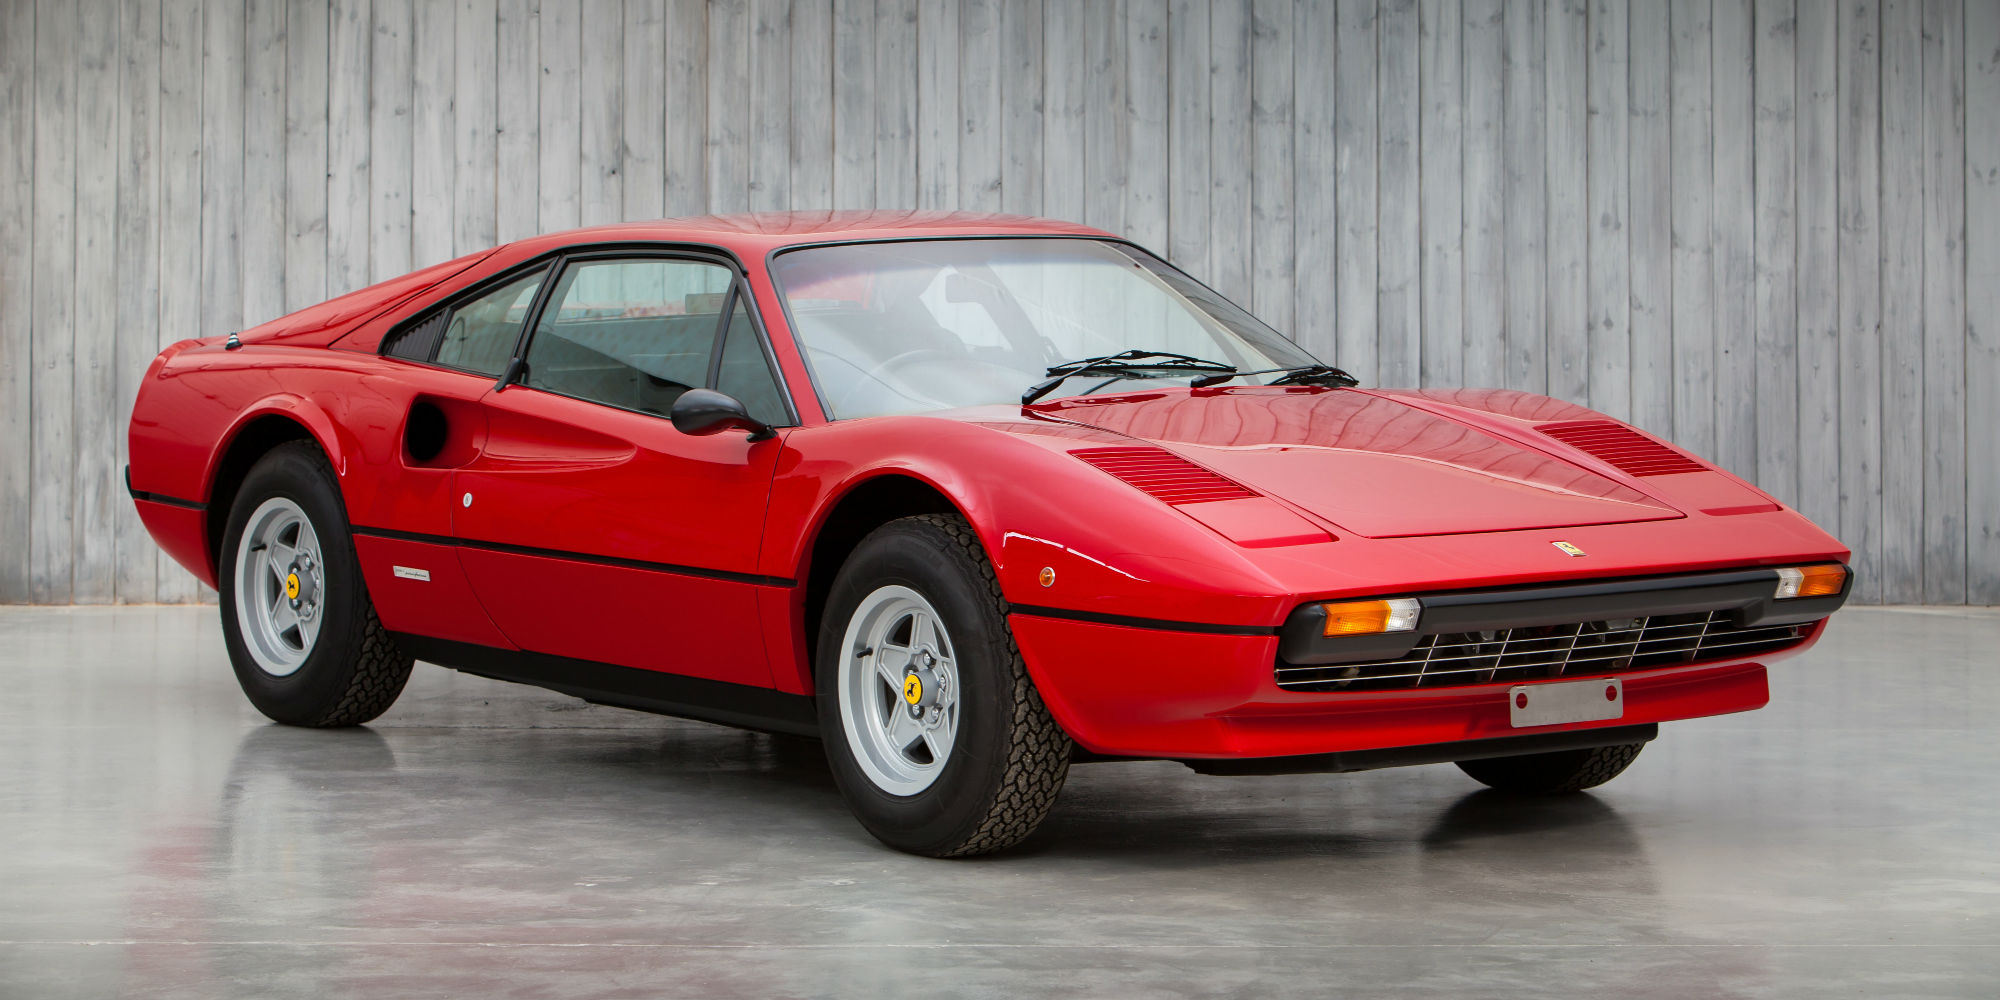 used cars lhd for manual quattro pistonheads sale in valvole gloucestershire ferrari gts classifieds